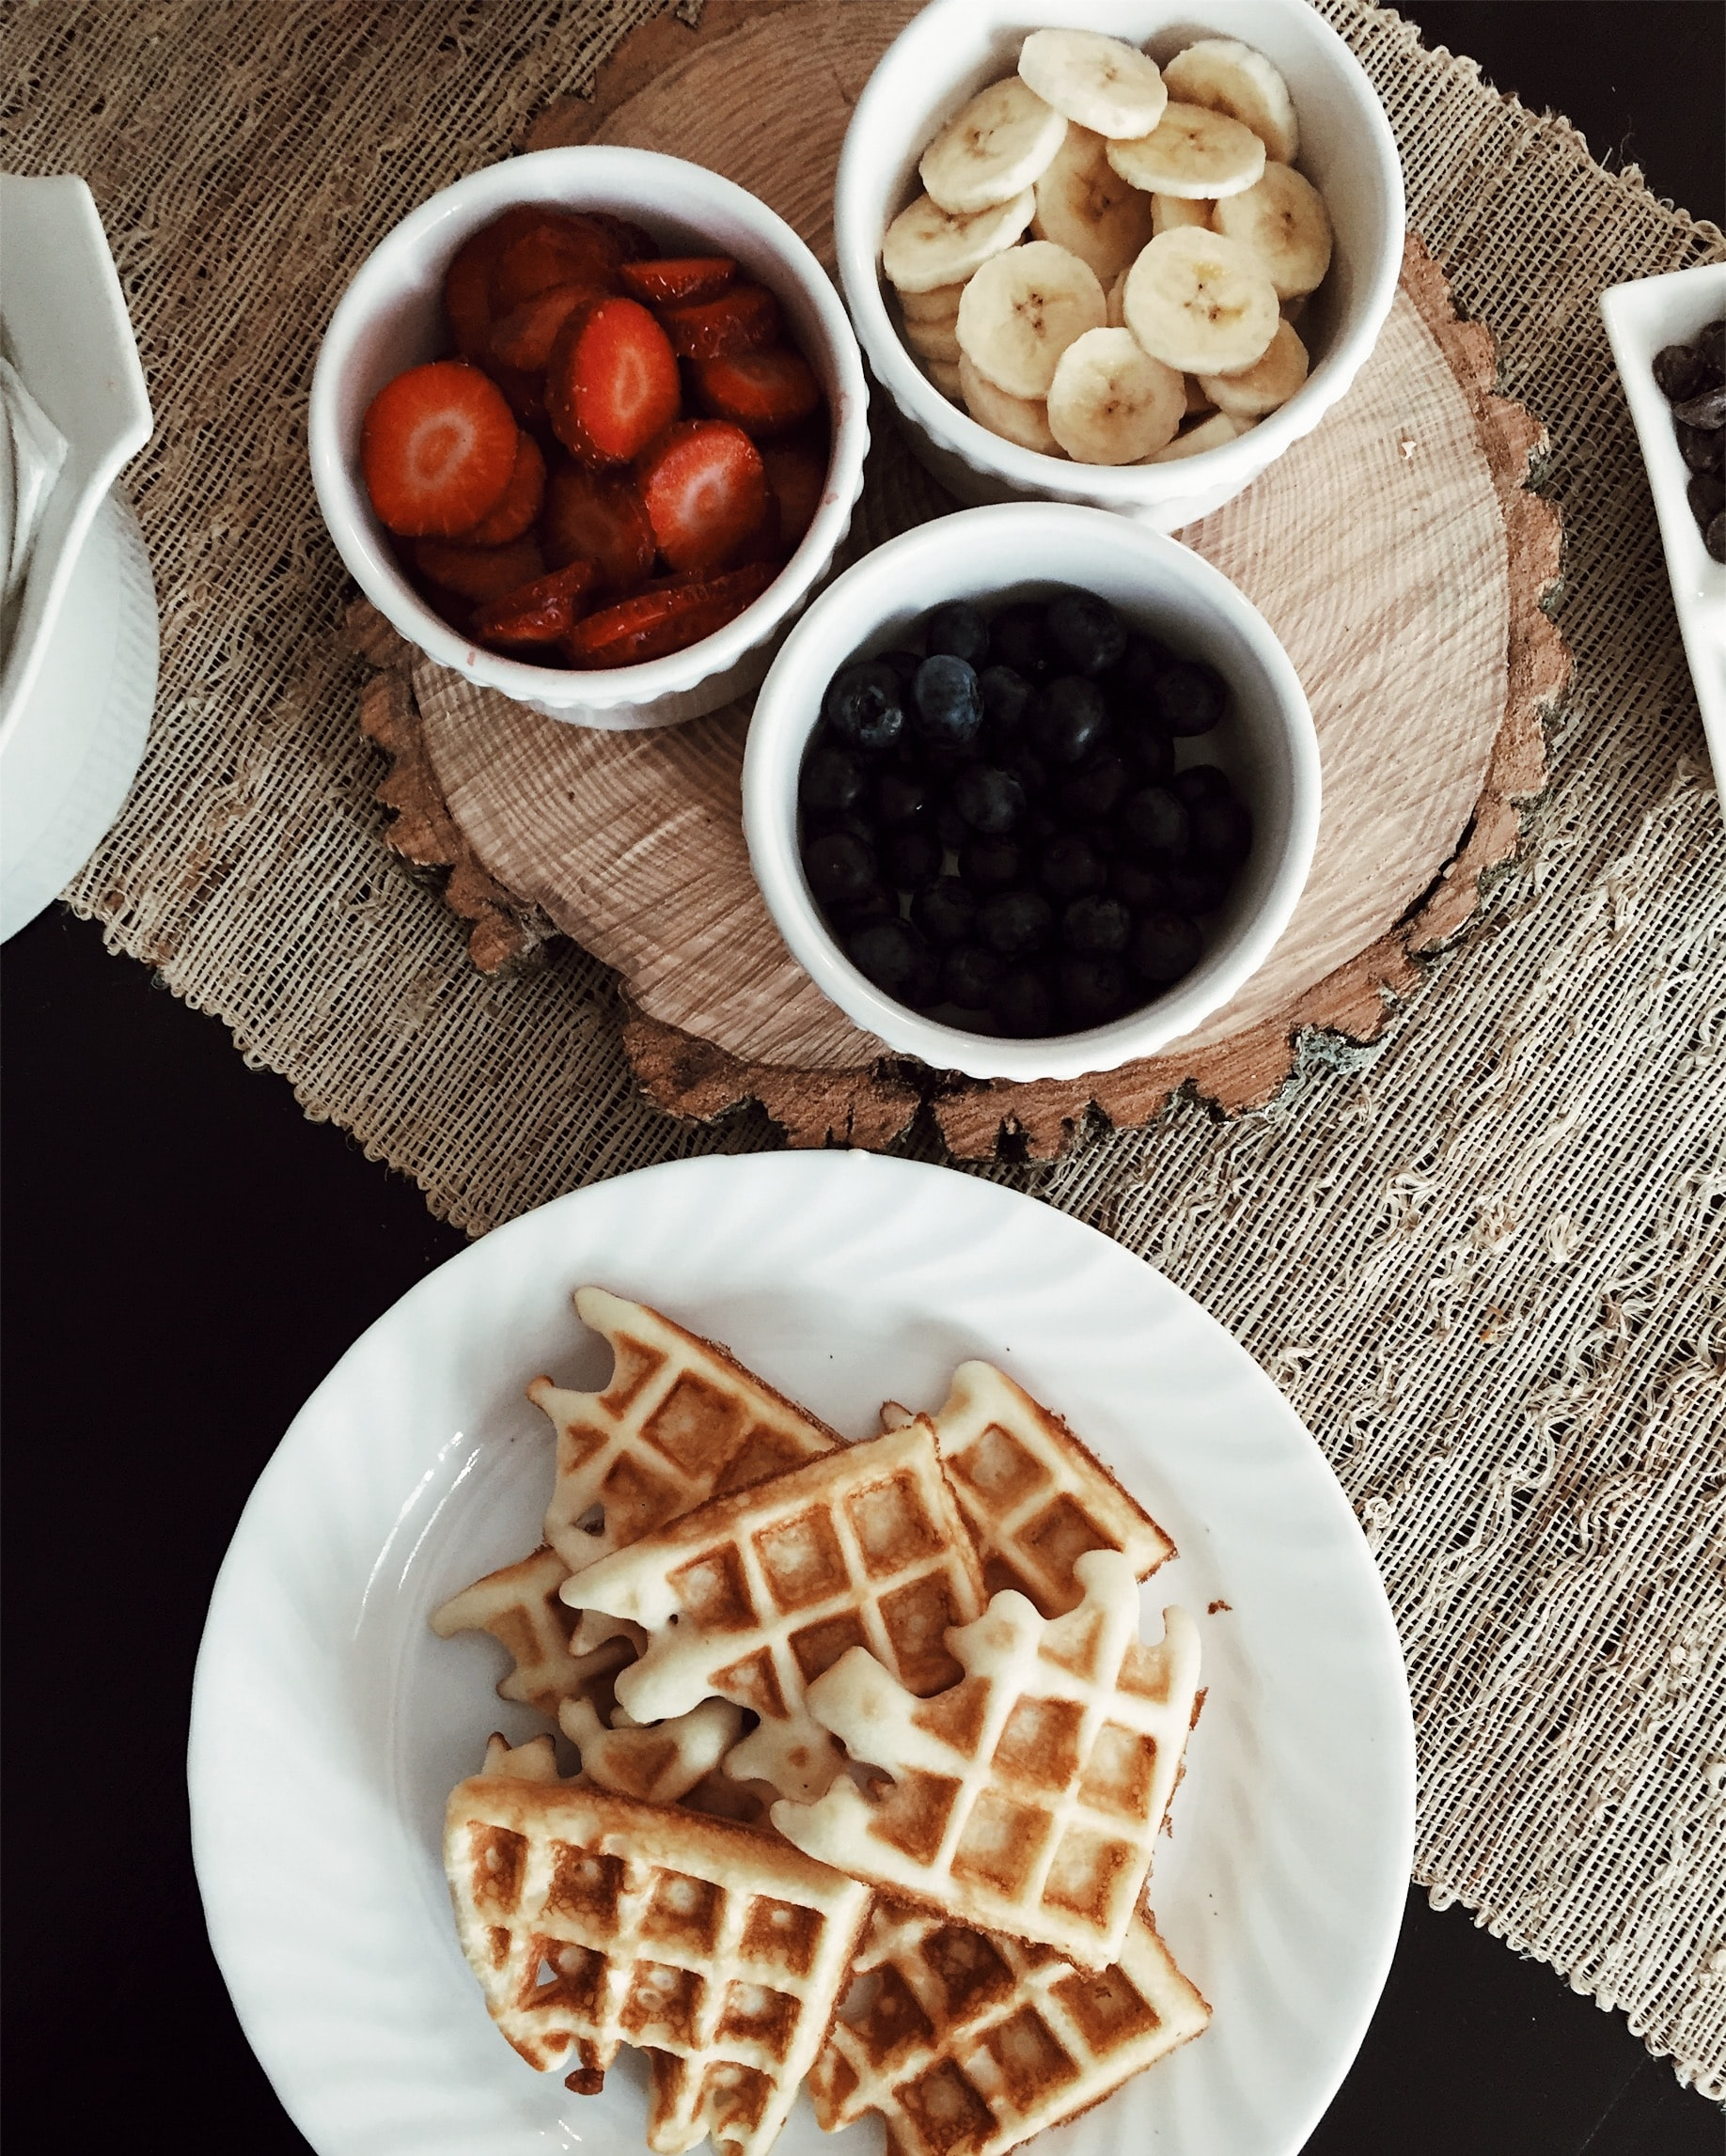 Flat lay of DIY waffles with bananas and berry toppings